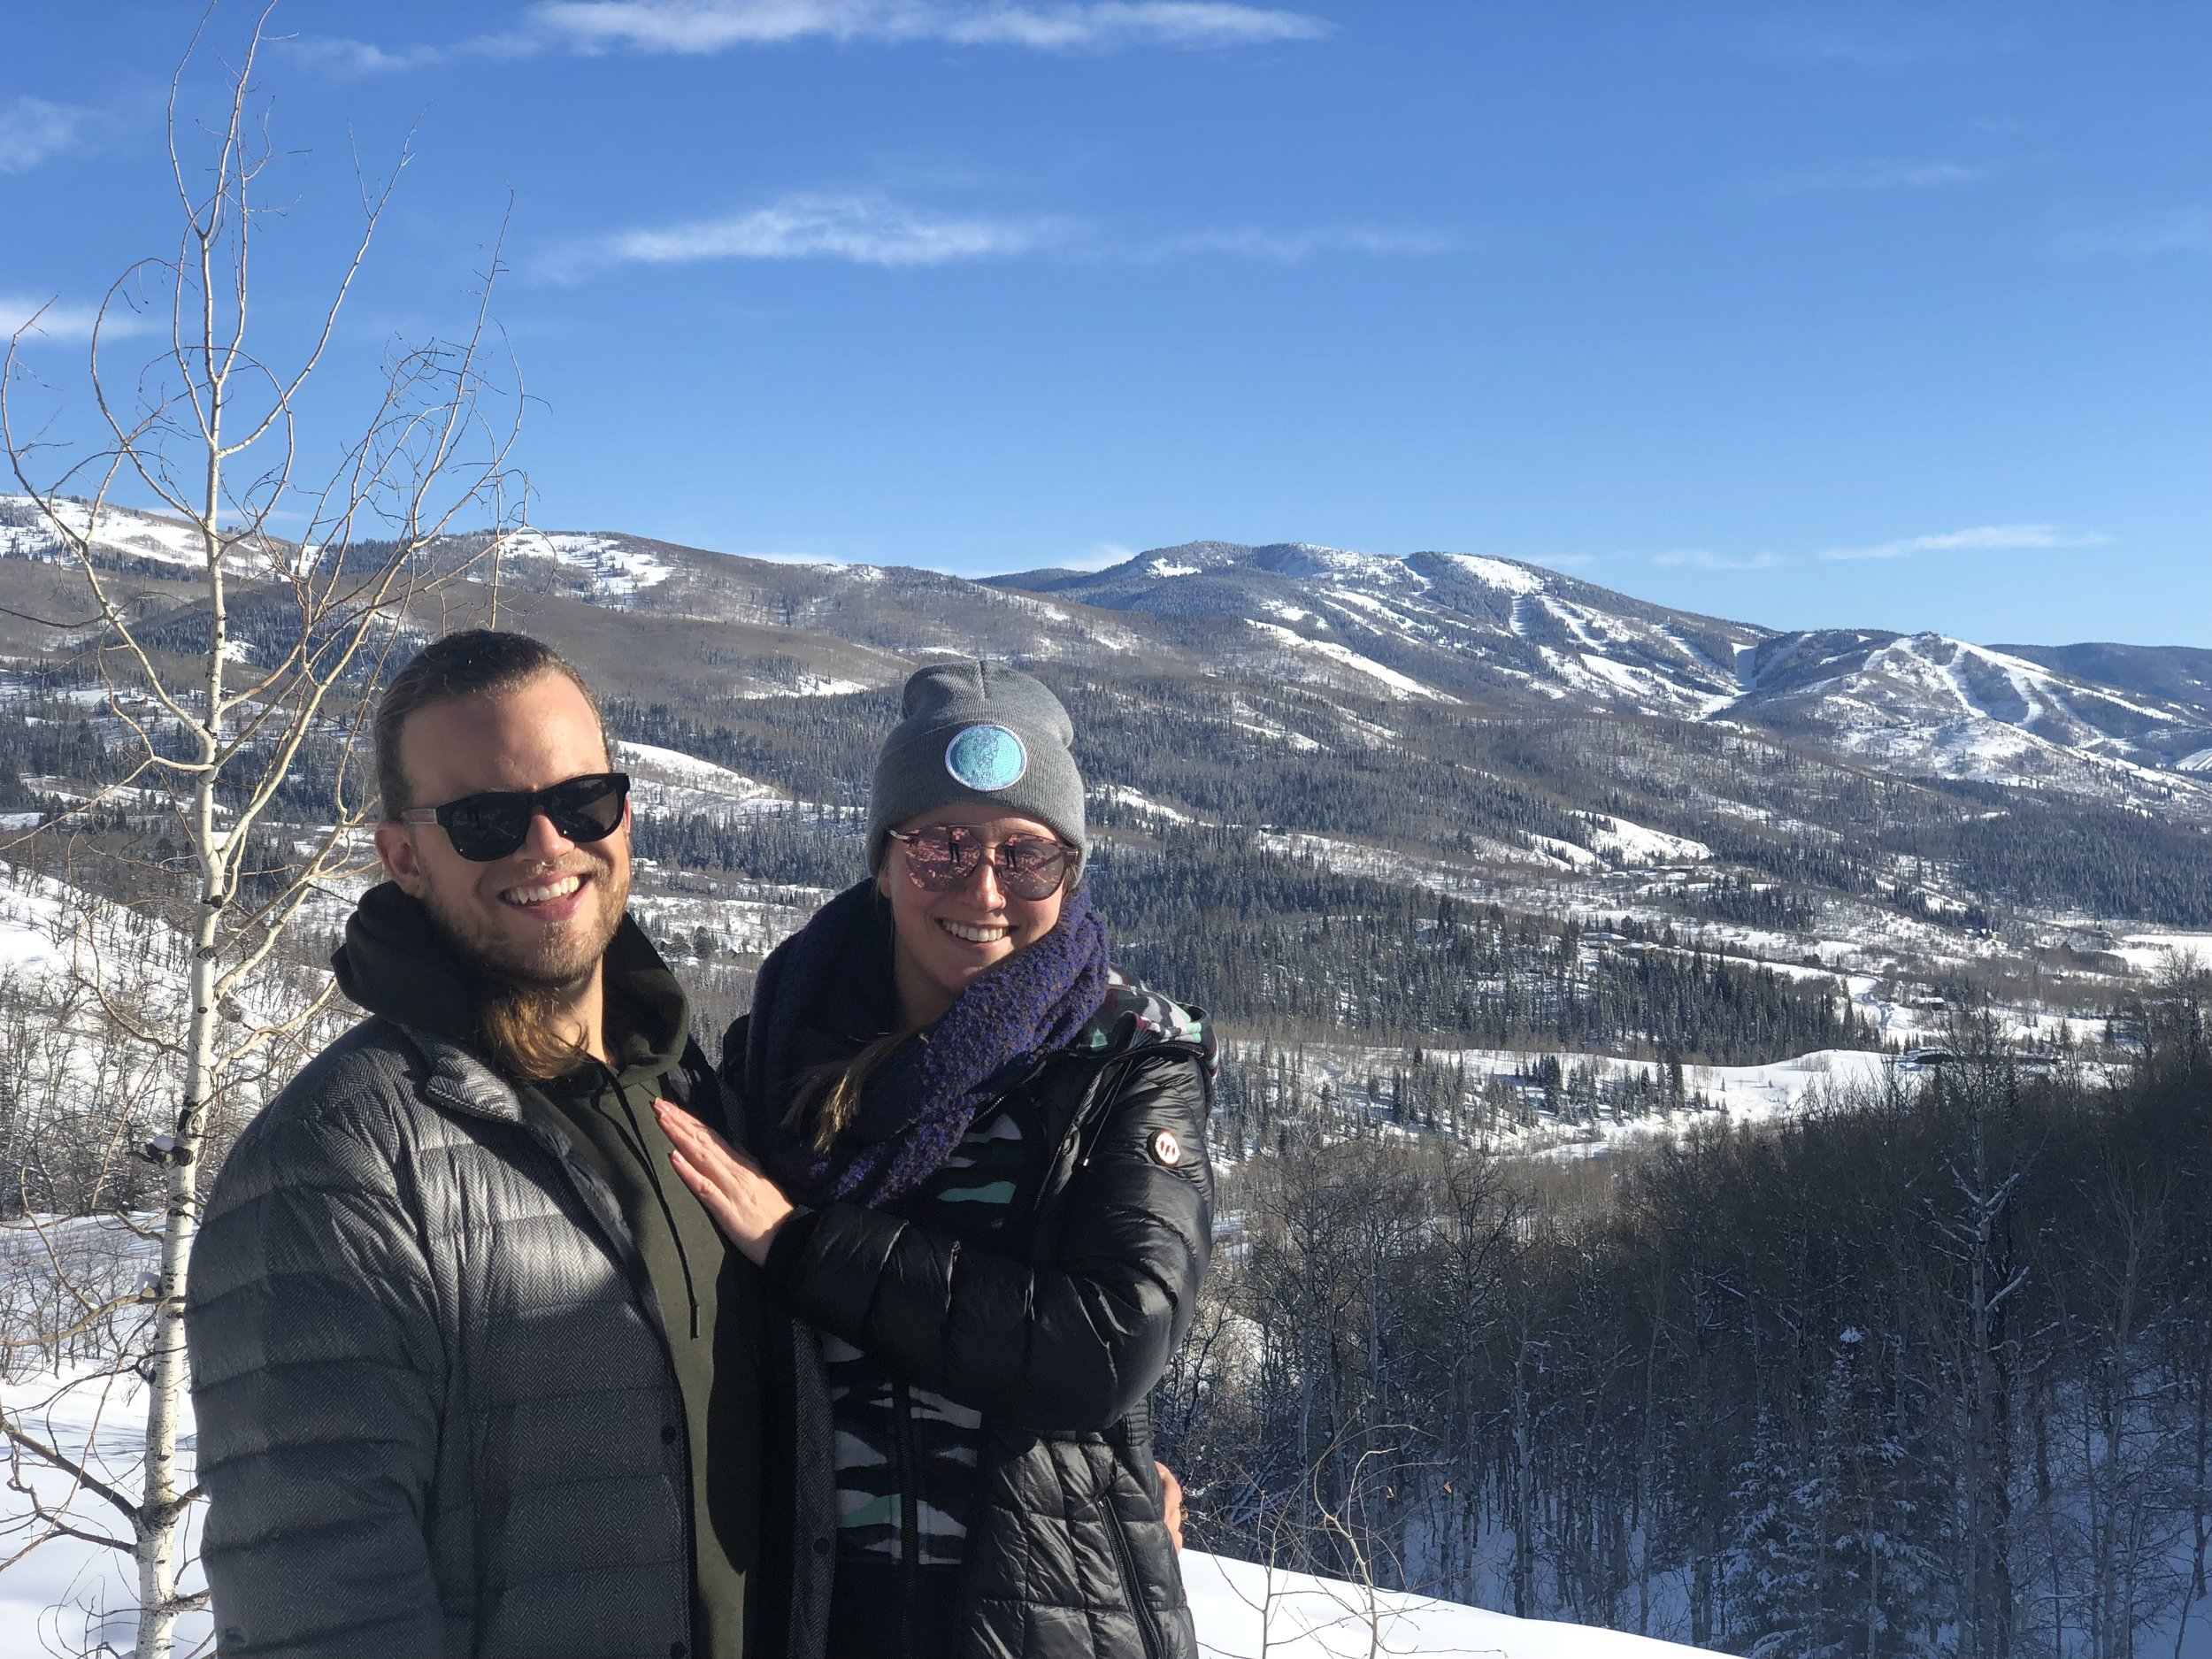 Brit and Jonah during the B Zen Wellness Winter Wonderland Retreat near Strawberry Park Hot Springs in Steamboat Springs, CO.